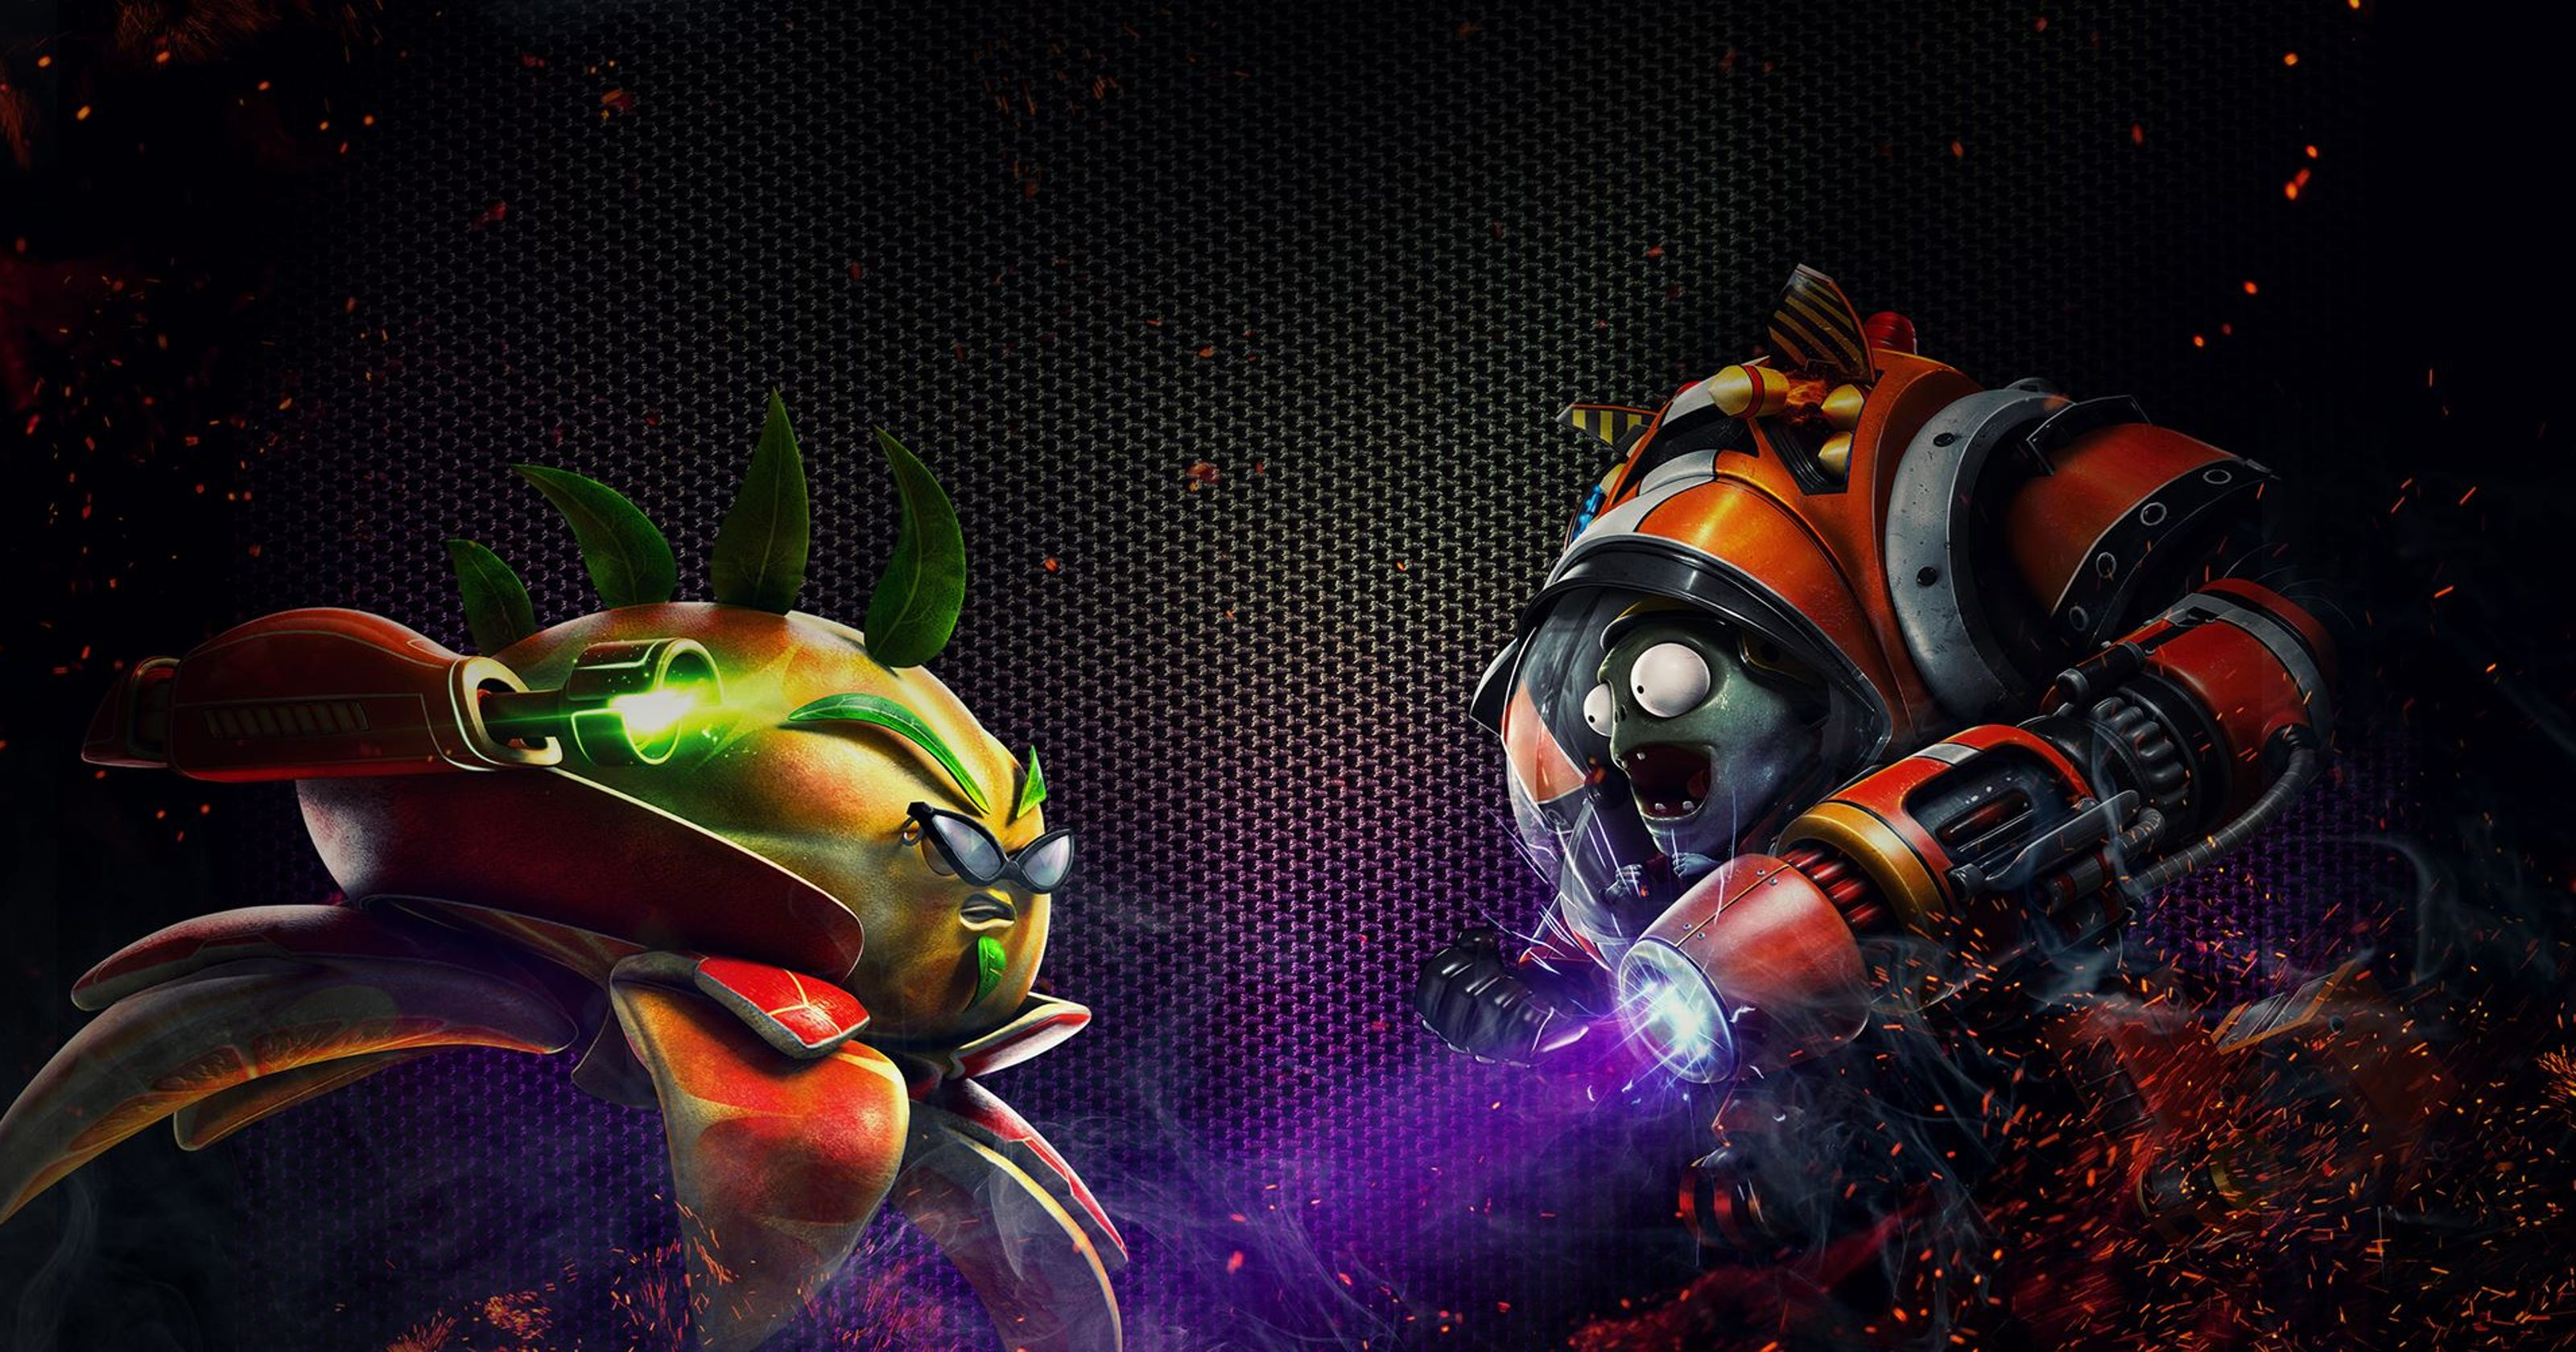 Plants vs zombies garden warfare 2 review technobubble - Plants vs zombies garden warfare 2 review ...